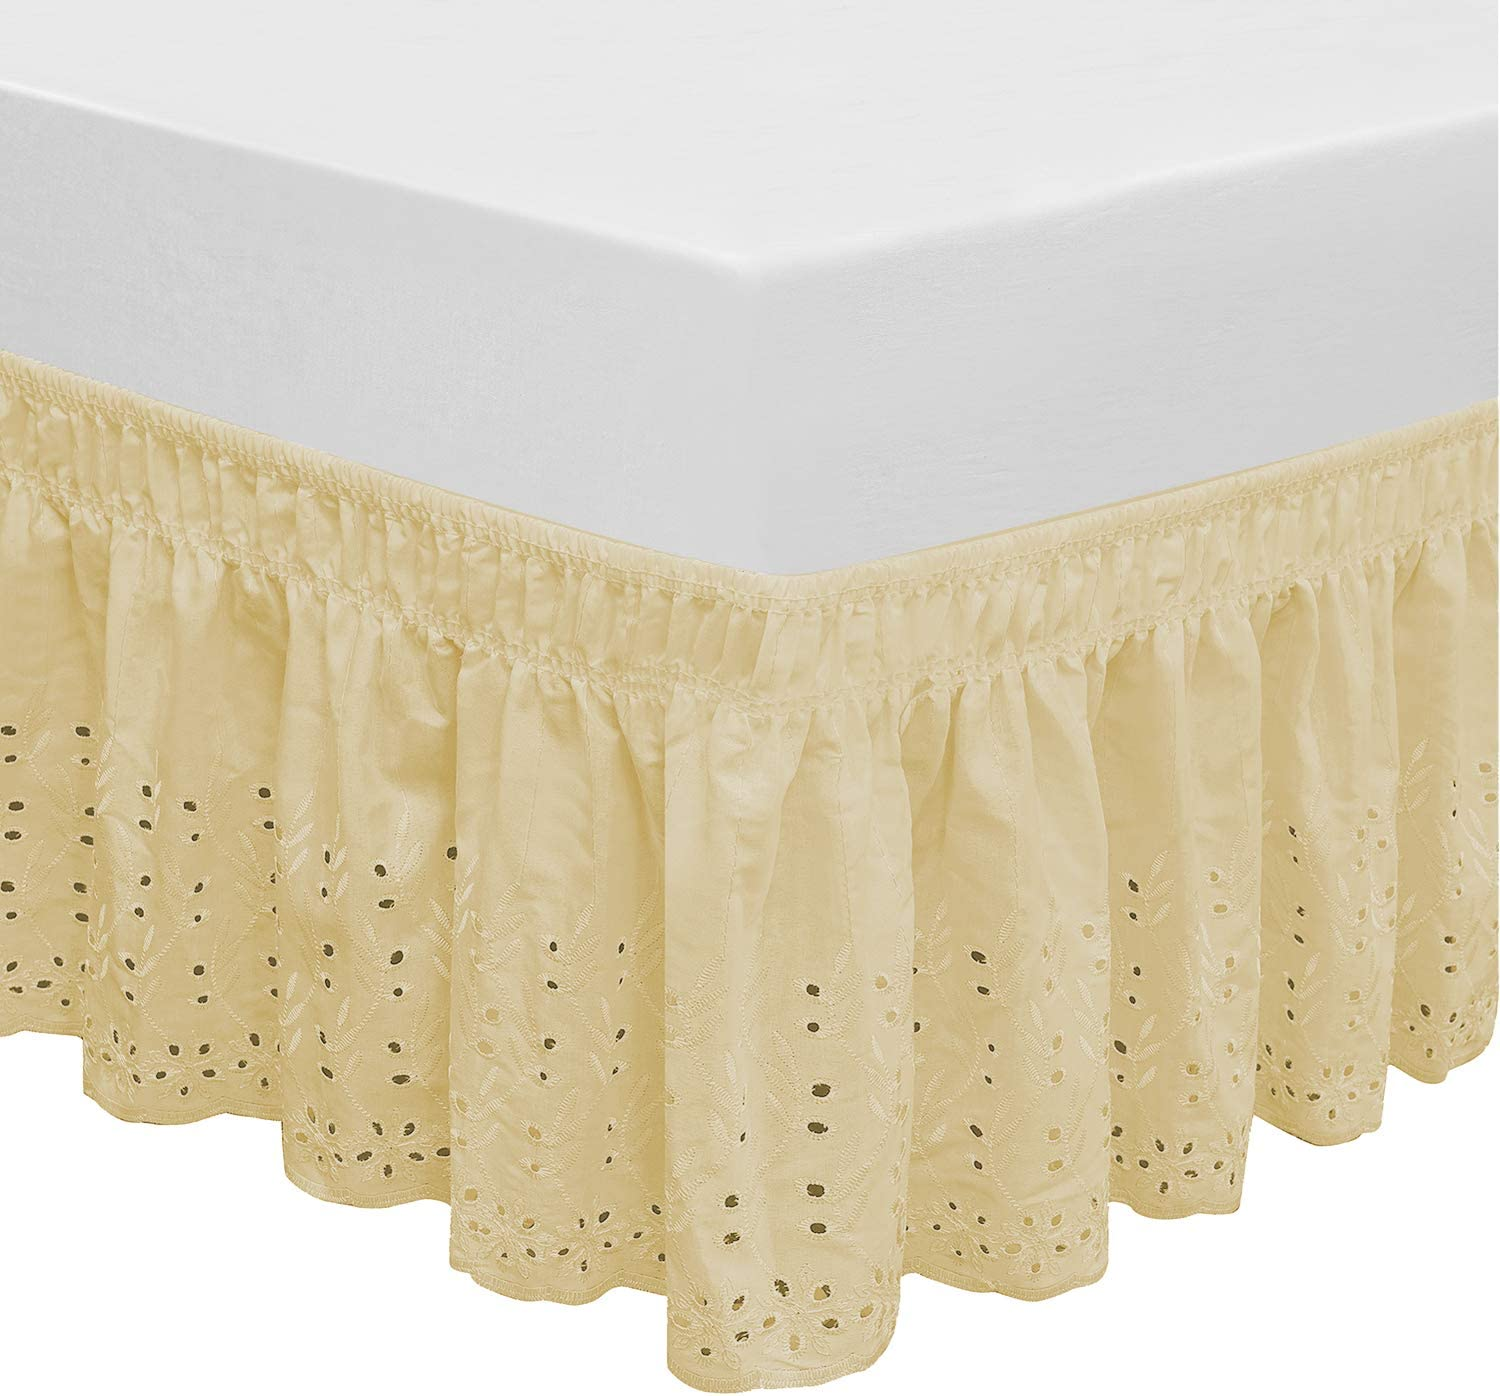 1 PIECE MICROFIBER SOLID BED RUFFLE SKIRT 14 INCH DROP SIZE FULL DARK GOLD